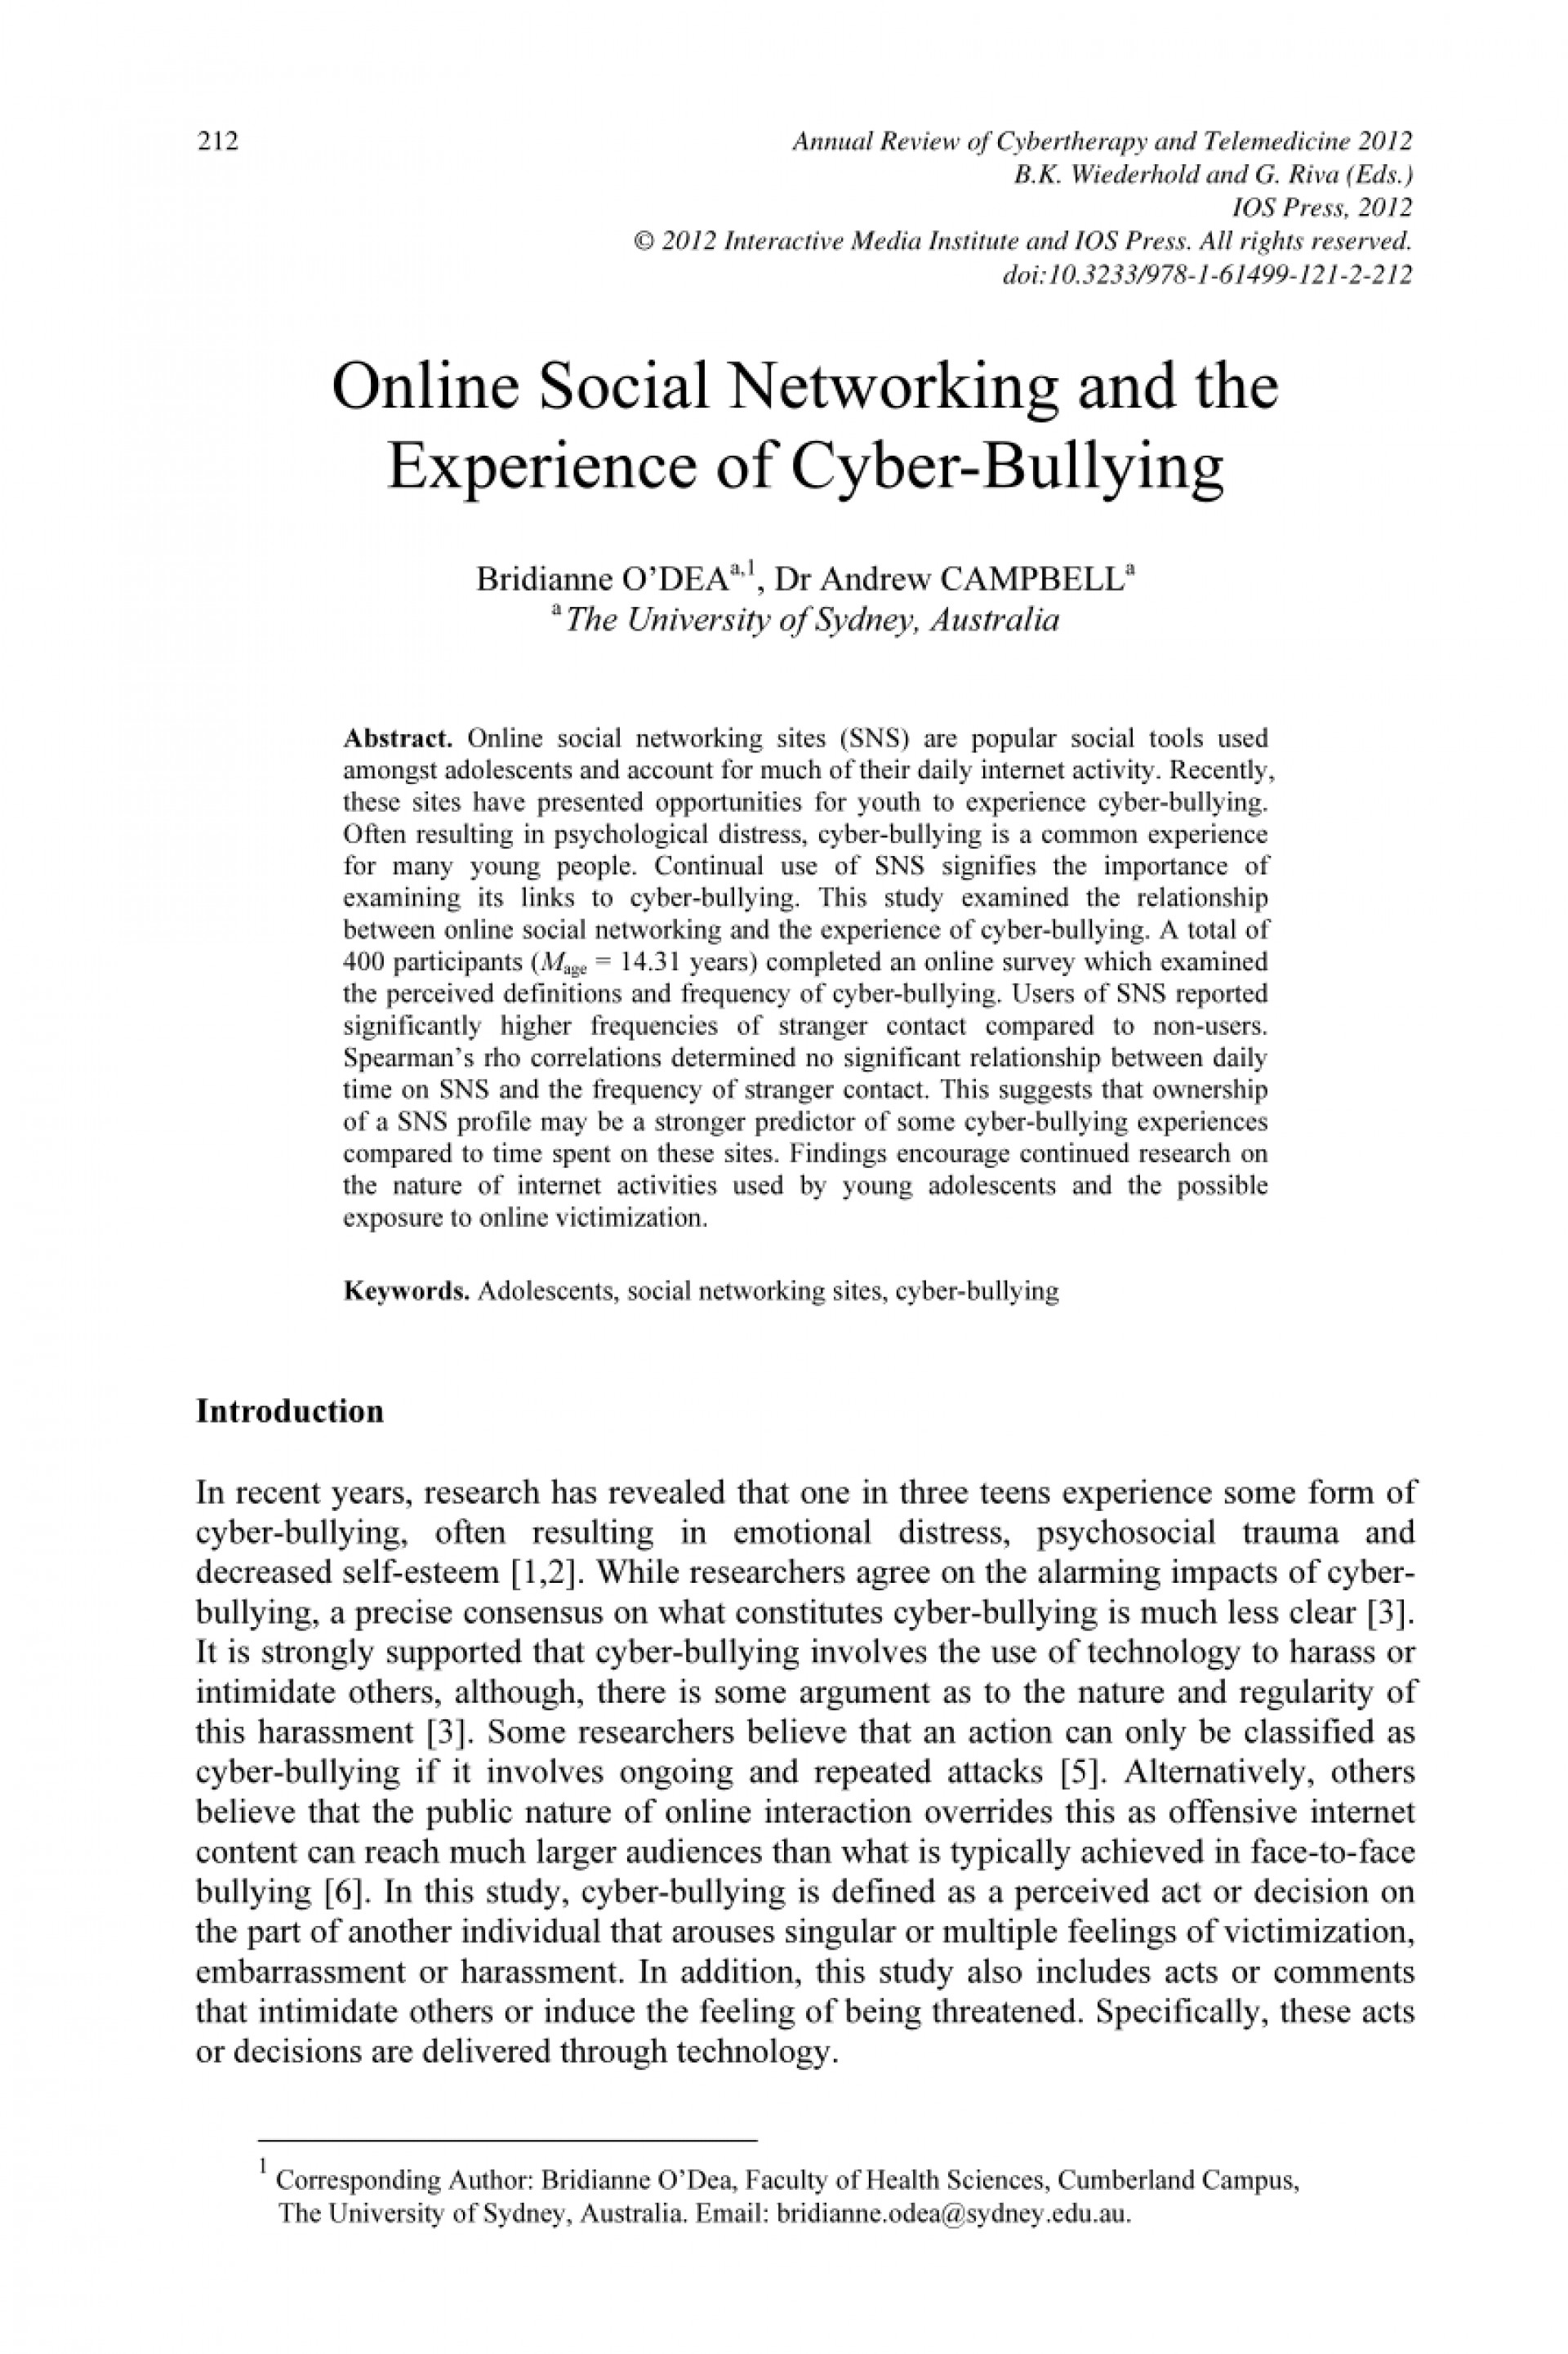 007 Cyberbullying Research Paper Abstract Phenomenal 1920